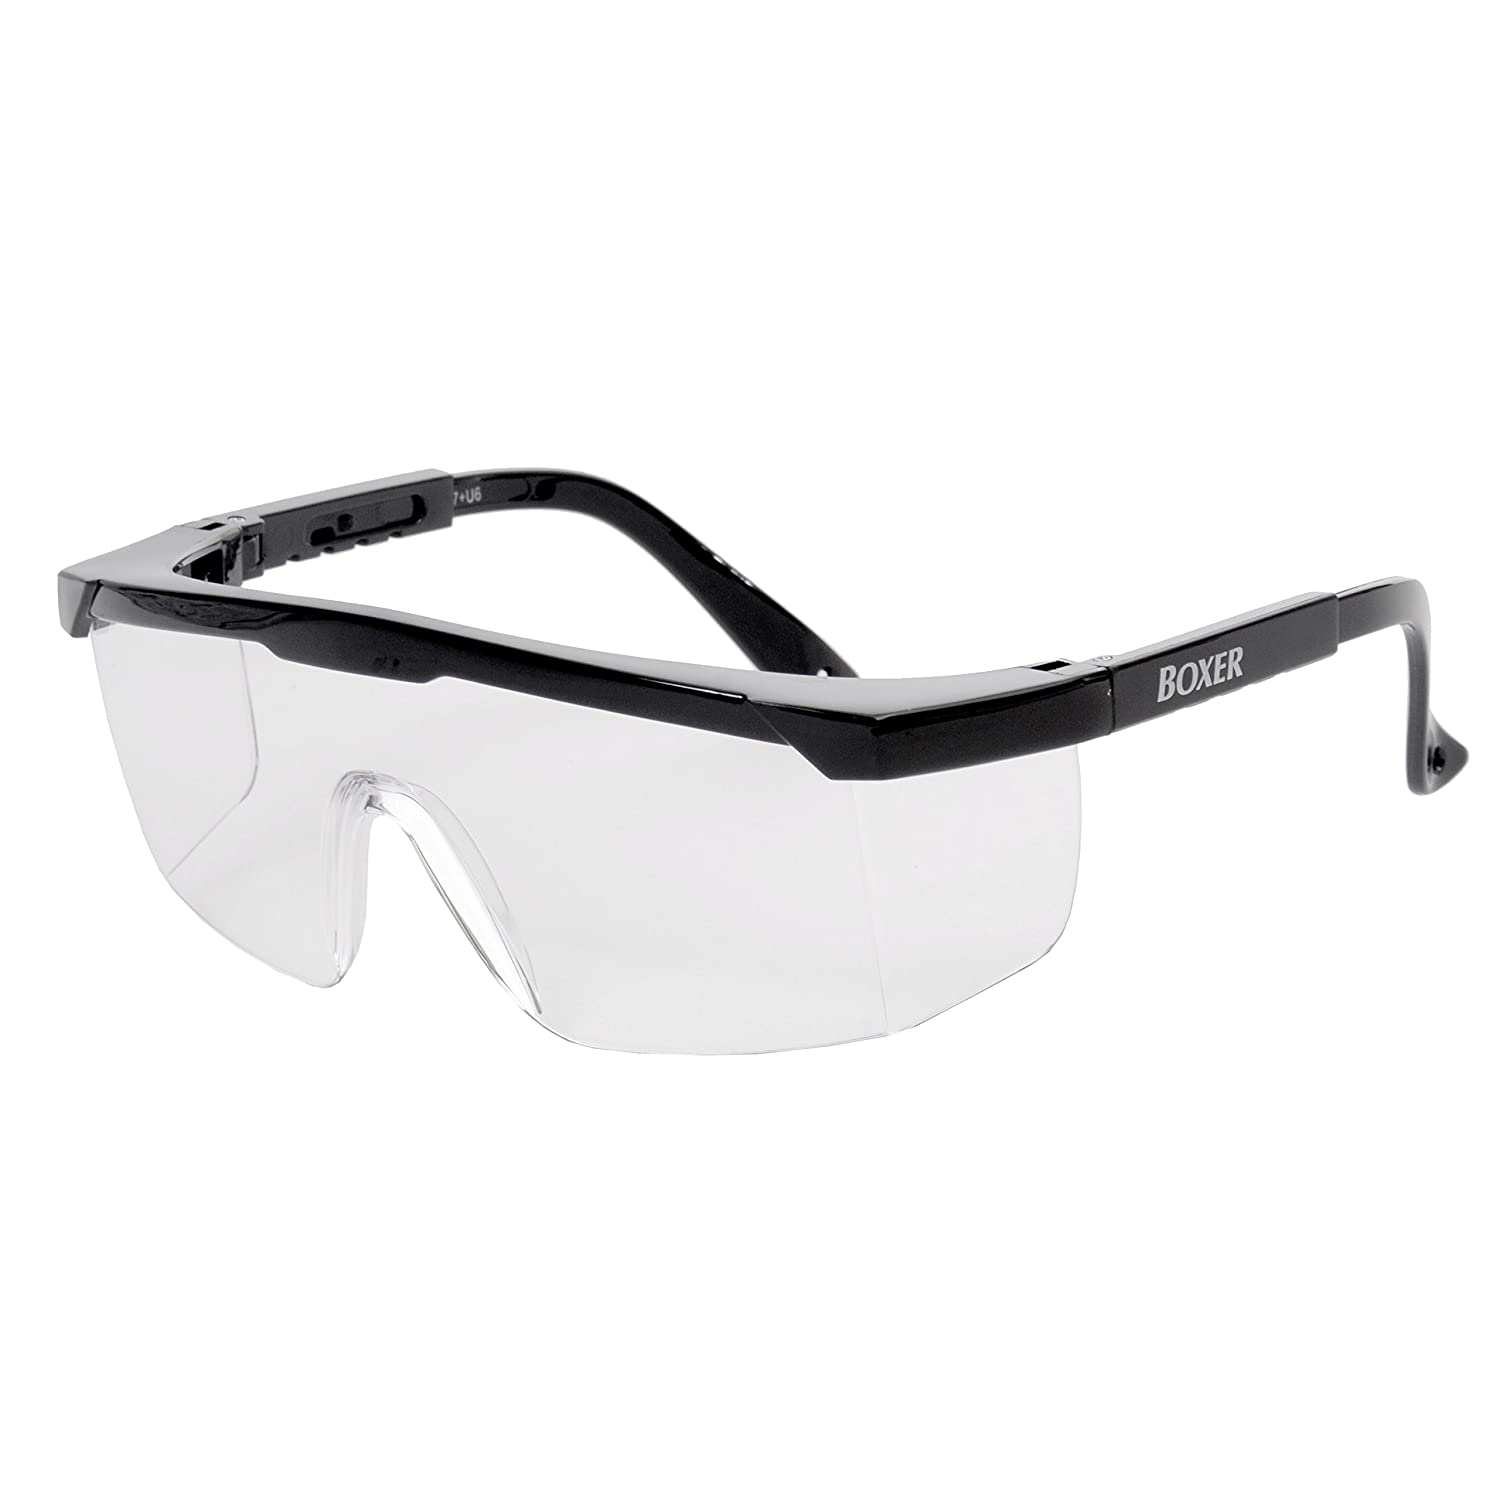 Black Frame//Clear Galeton 9230 Boxer Classic Safety Glasses with Adjustable Temples and Anti-Scratch Lenses